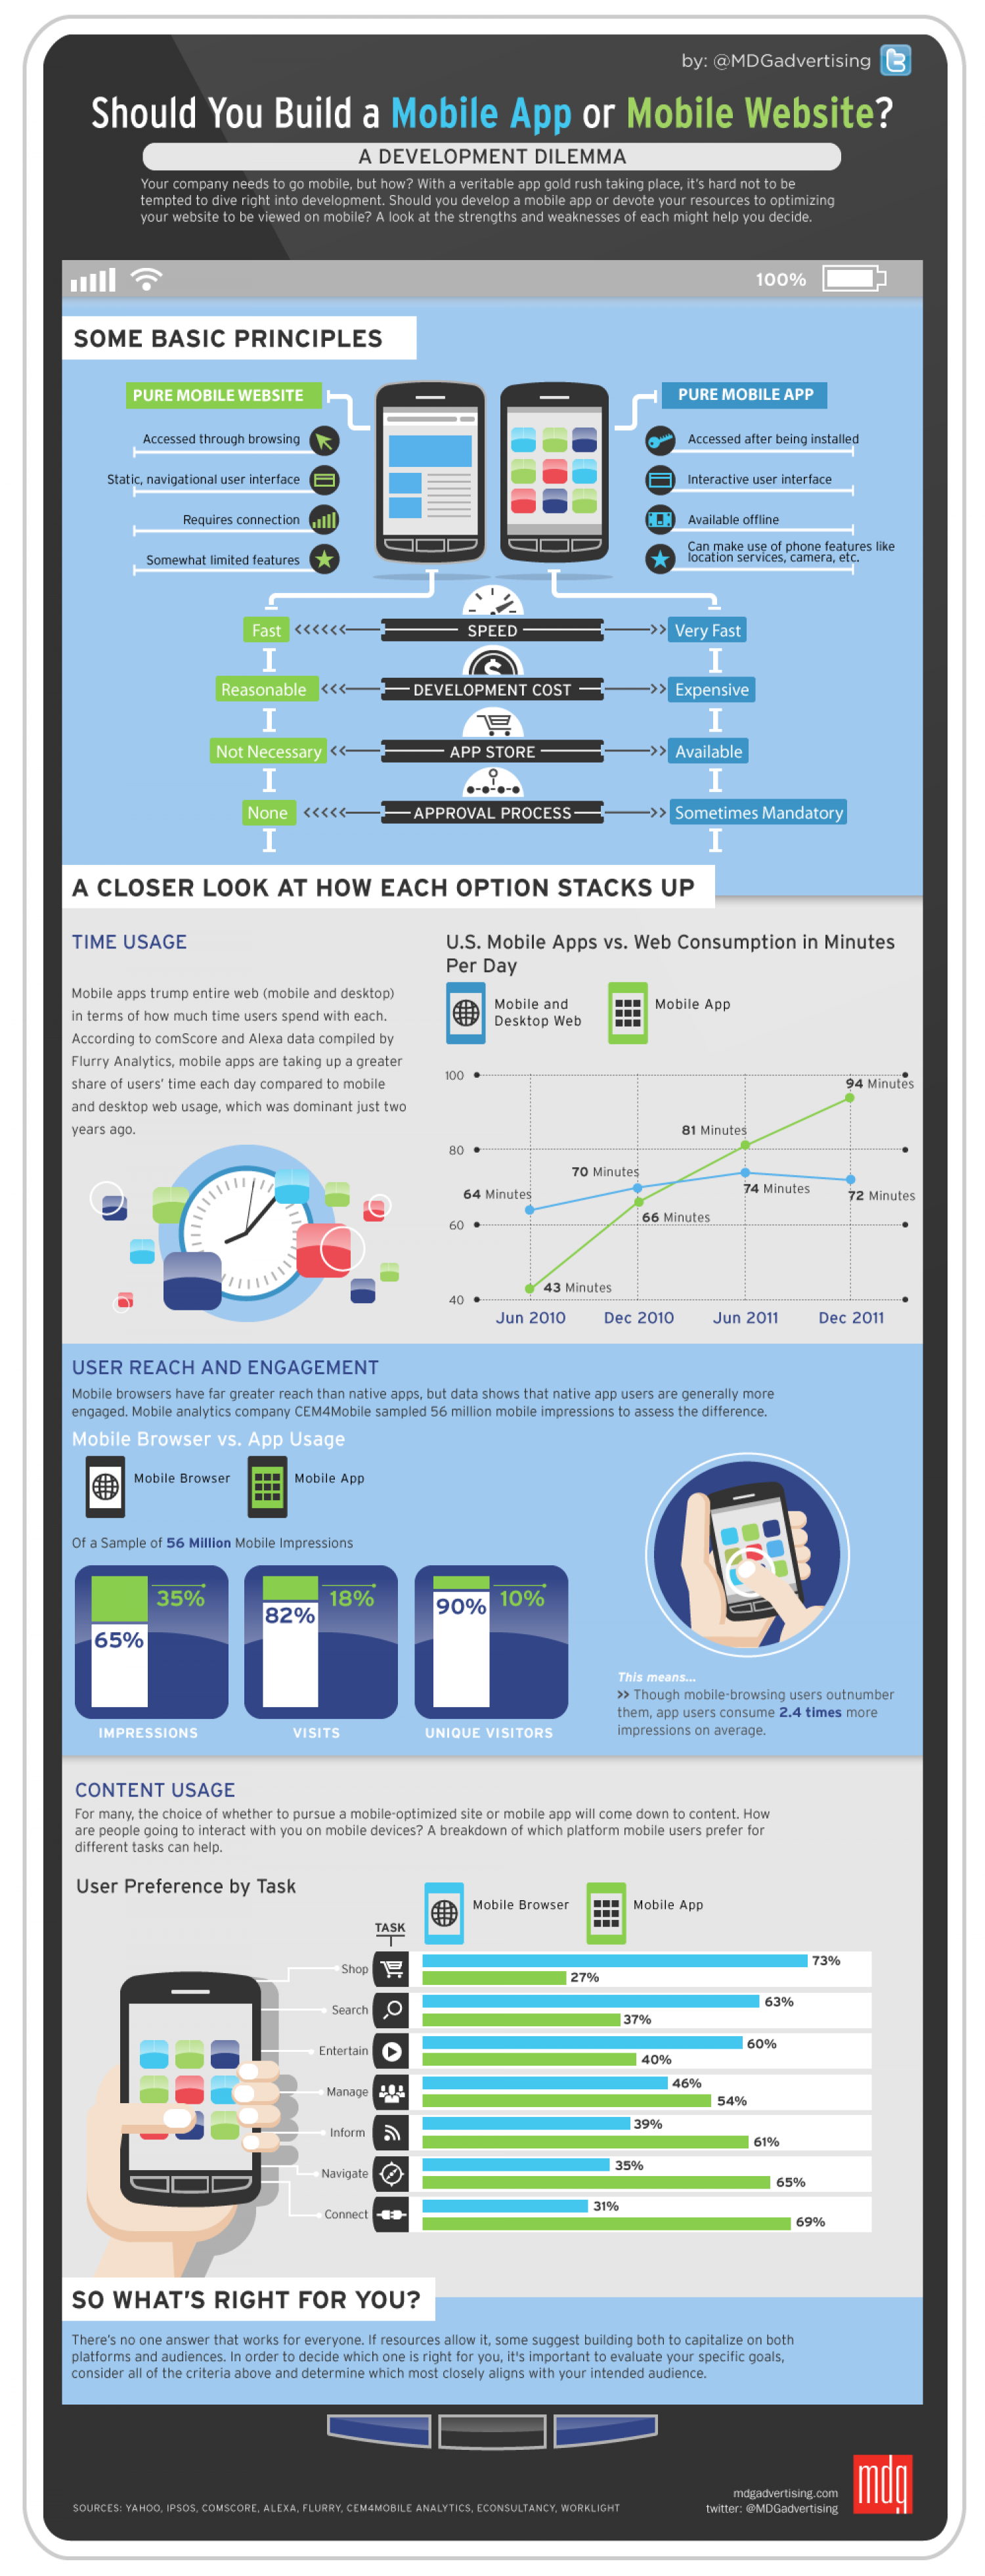 Should You Build a Mobile App or Mobile Website? Infographic